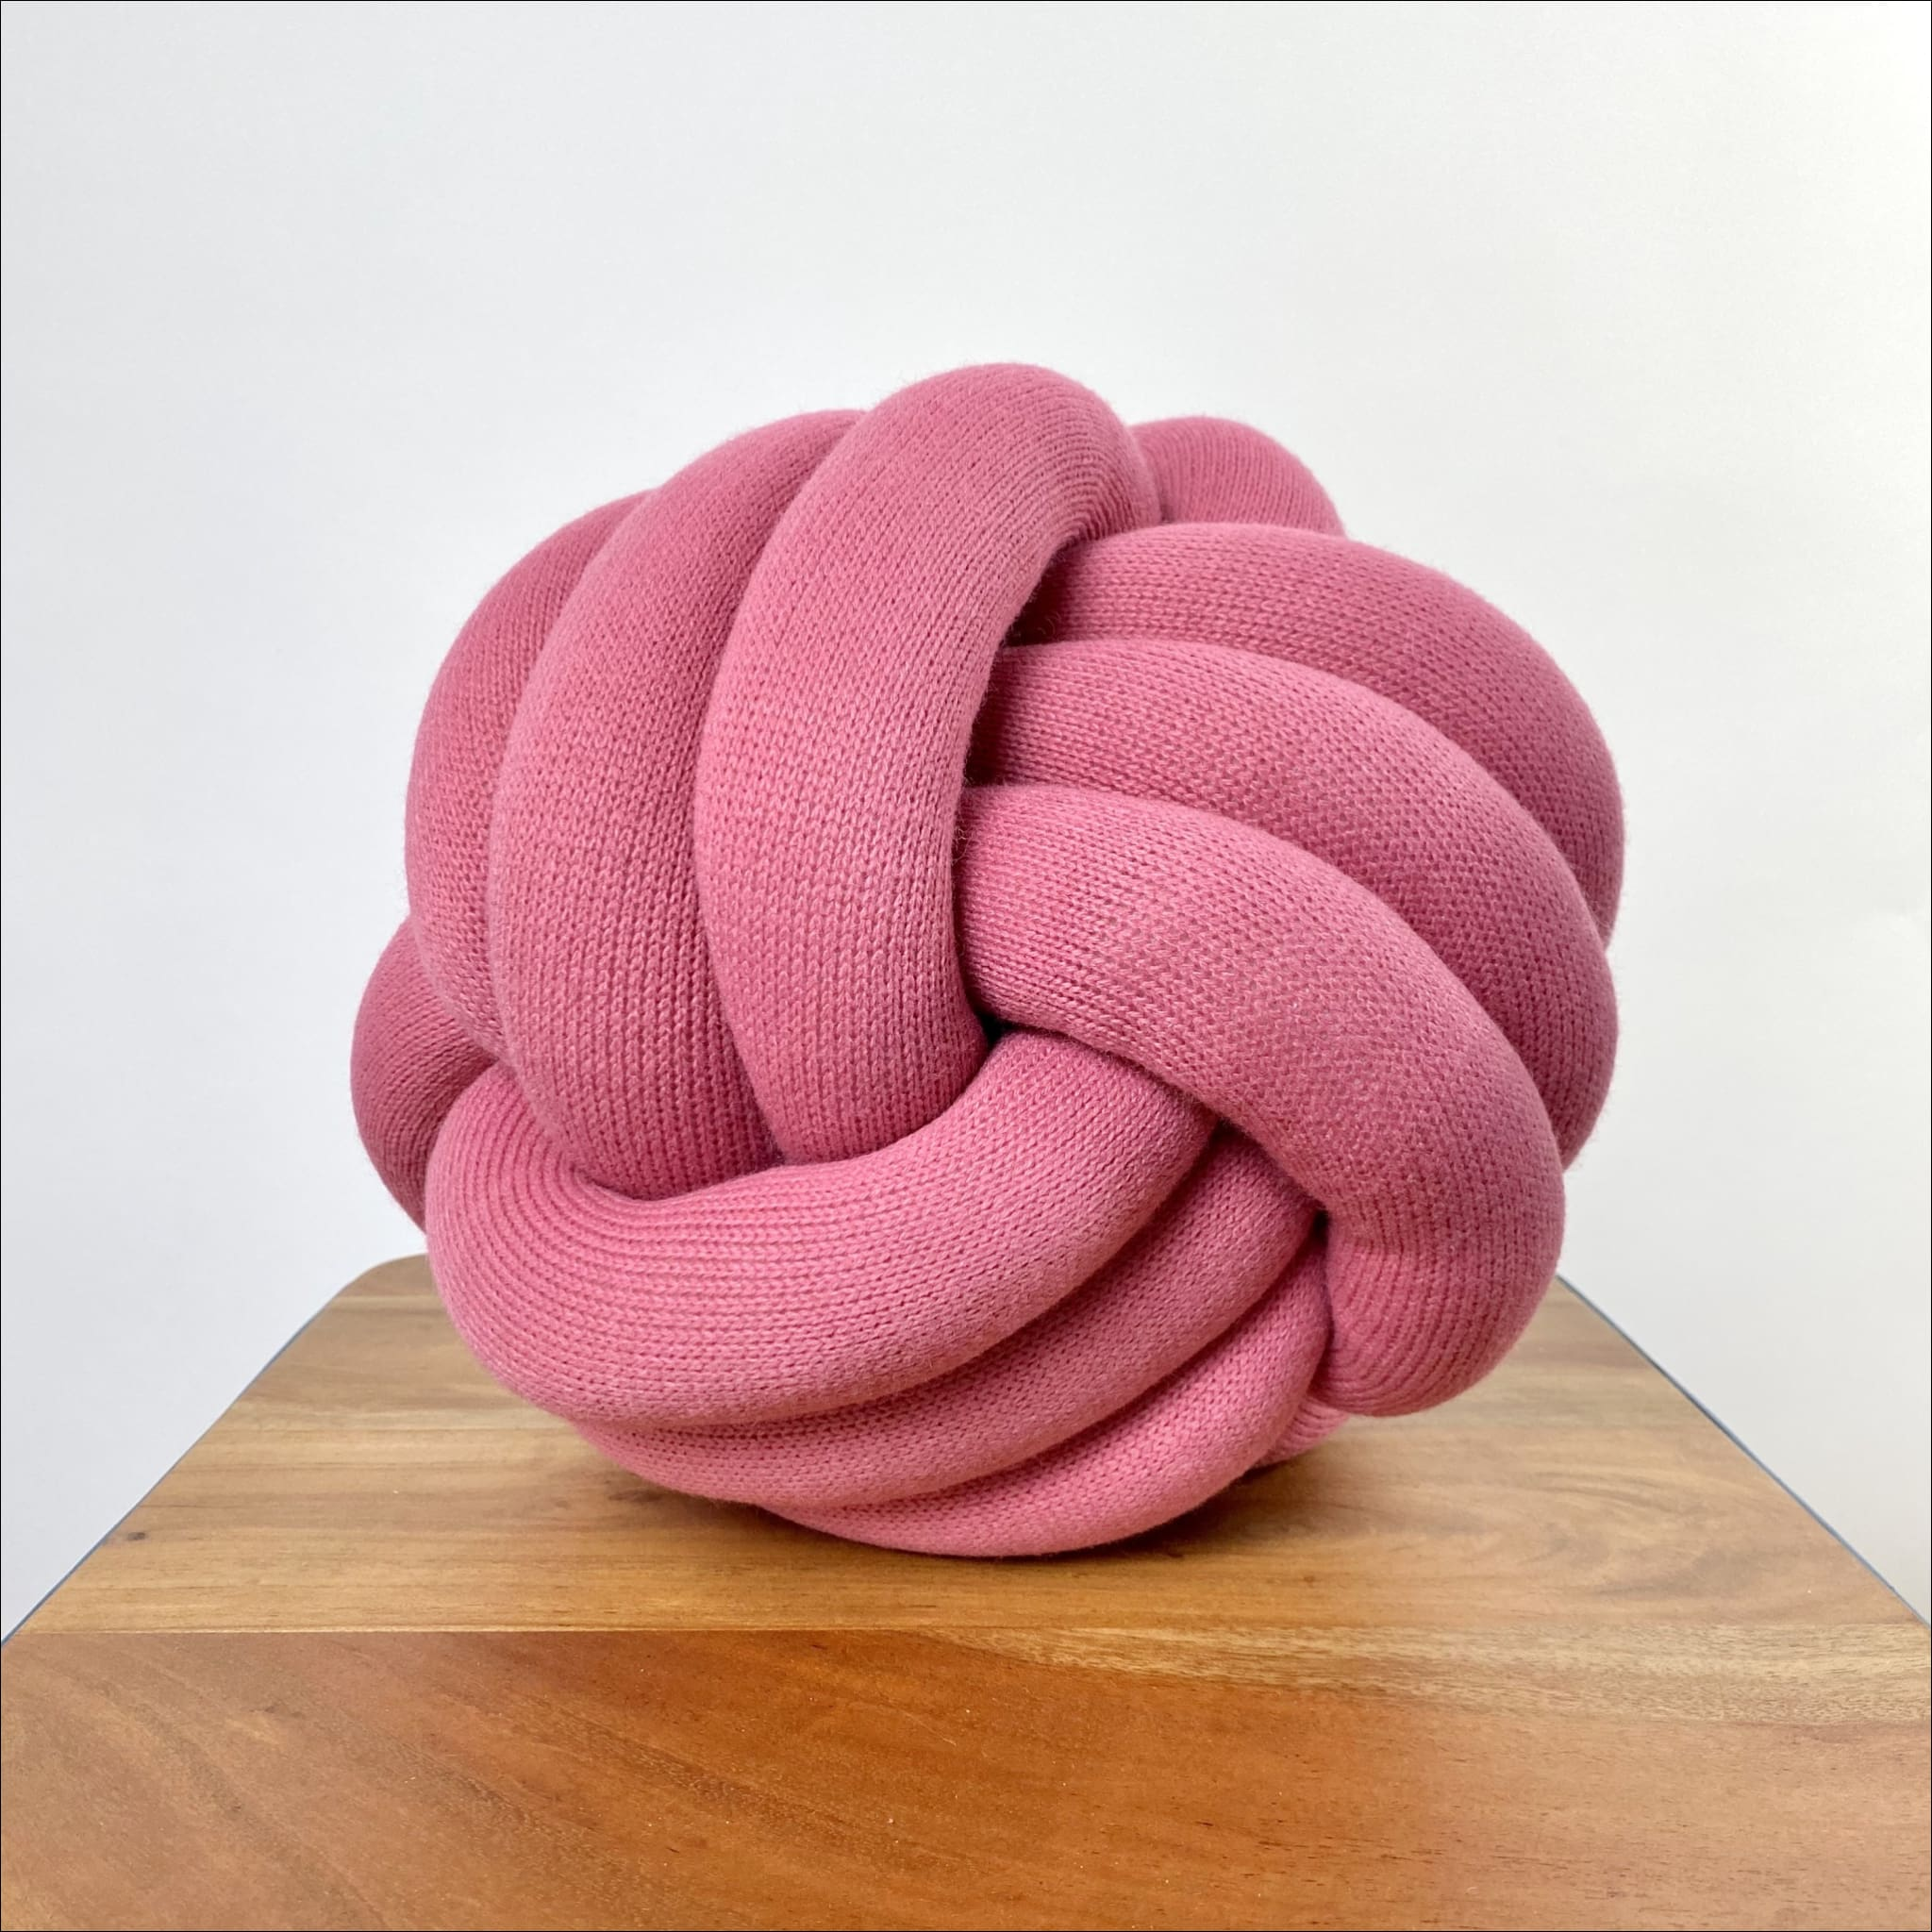 The Knot Pillow Dirty Pink Round Knot Pillow